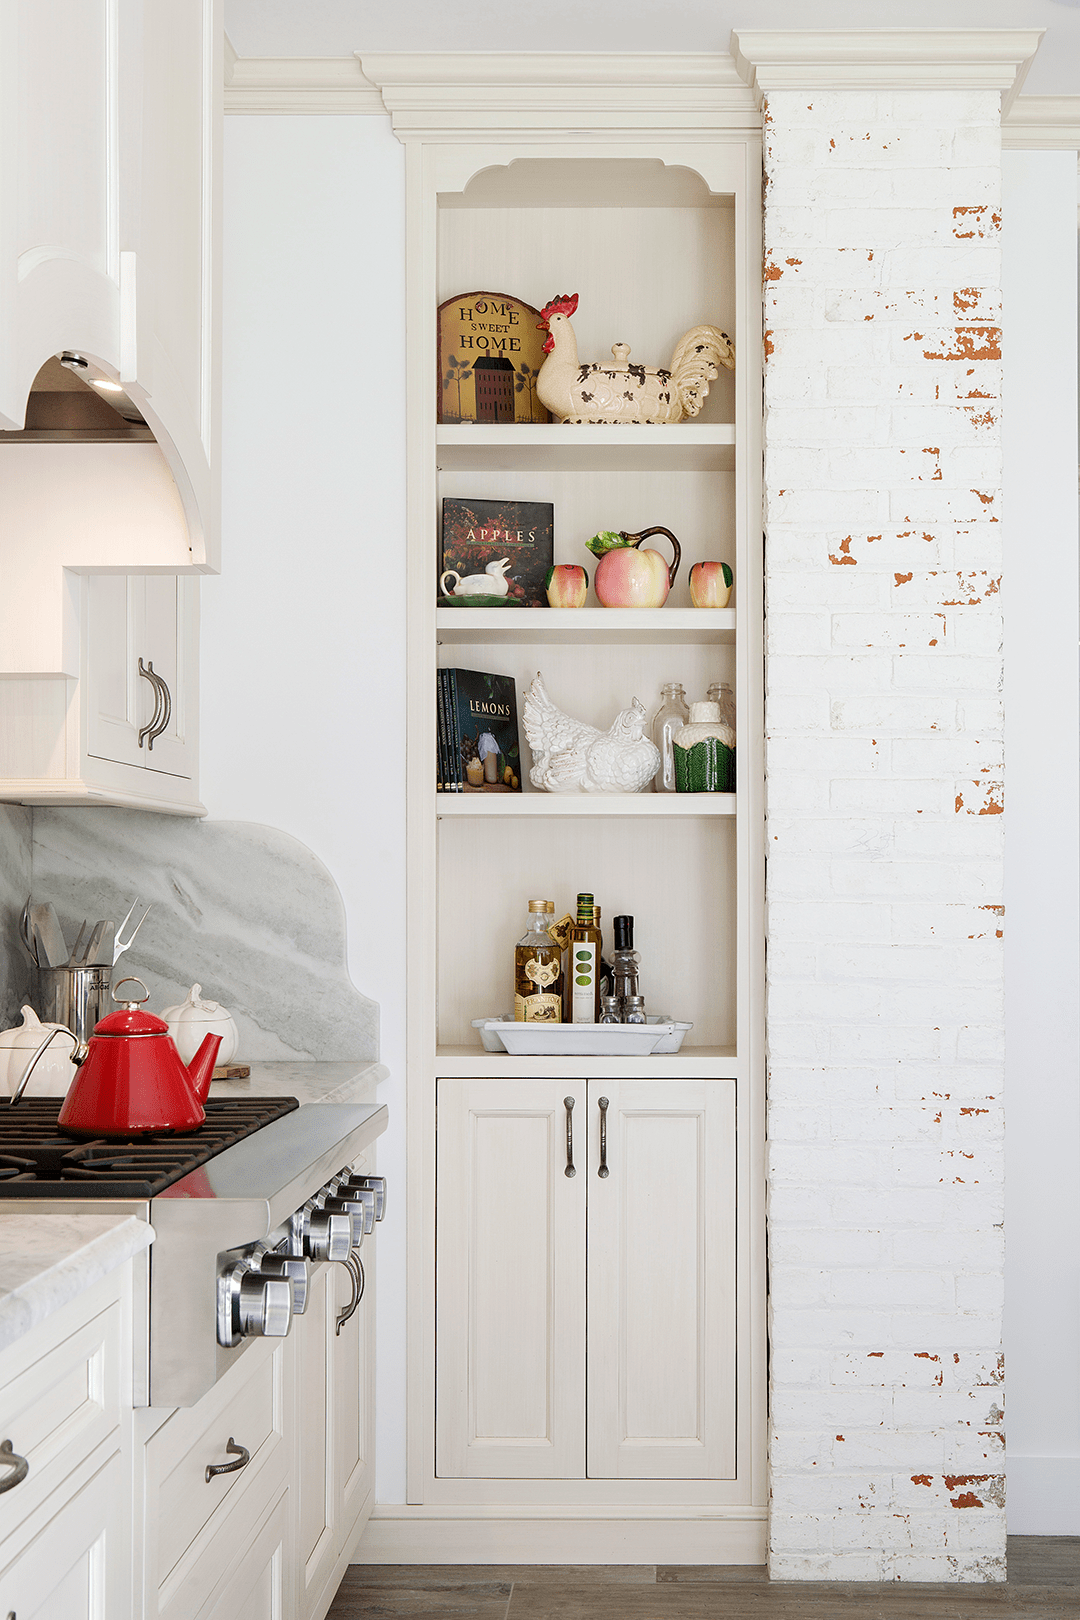 kitchen bookshelf bench for table open shelving kitchens 8 reasons why works the concept offers several functional and aesthetic benefits